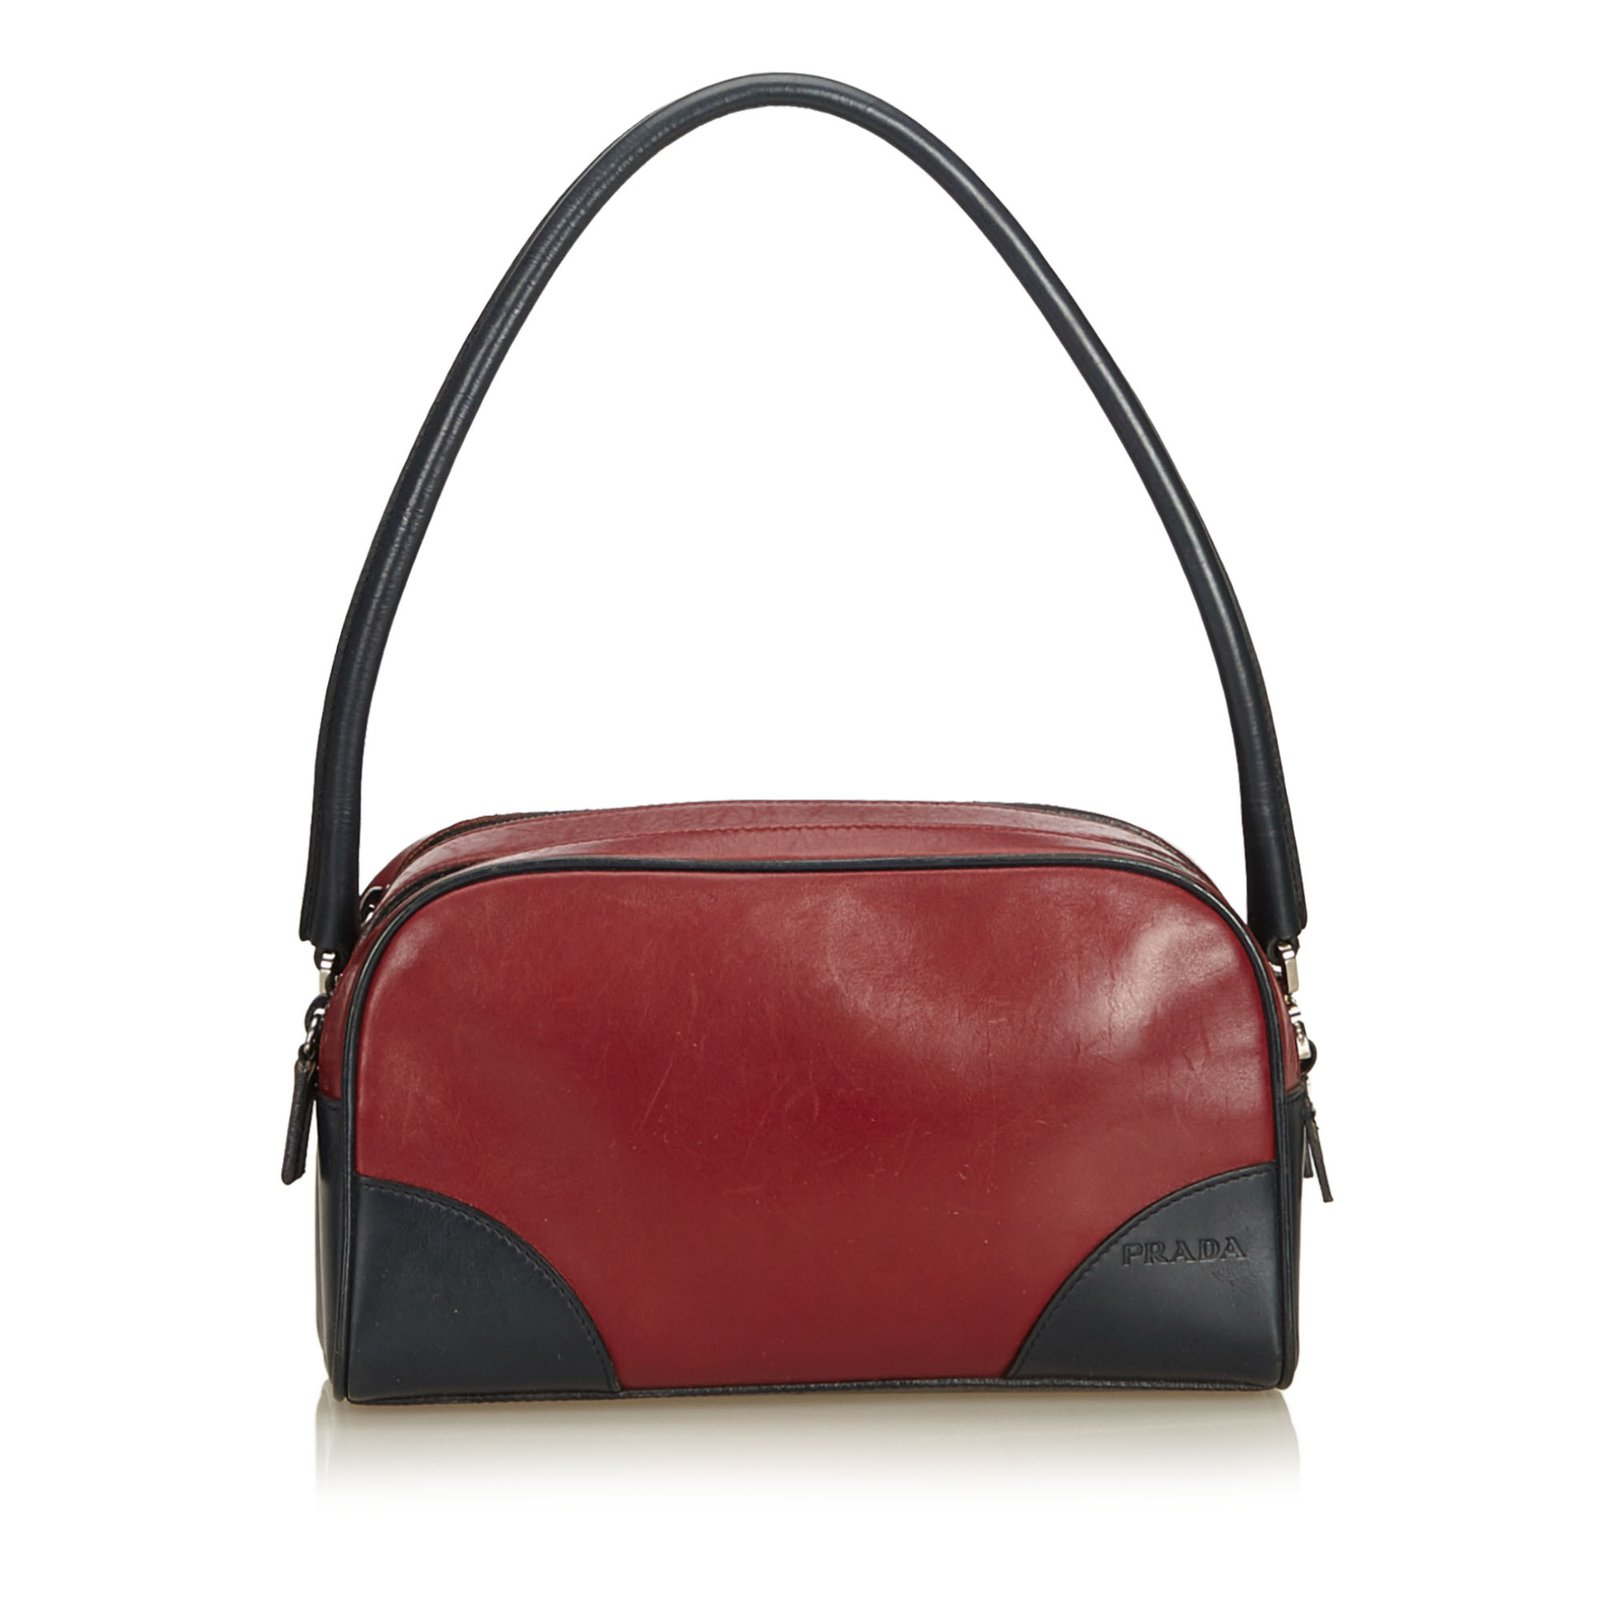 9b668aae5502 usa prada saffiano cuir double bagstrap black red tote 5544a 38876  coupon  code for prada leather shoulder bag handbags leatherother blackred  ref.91788 ...